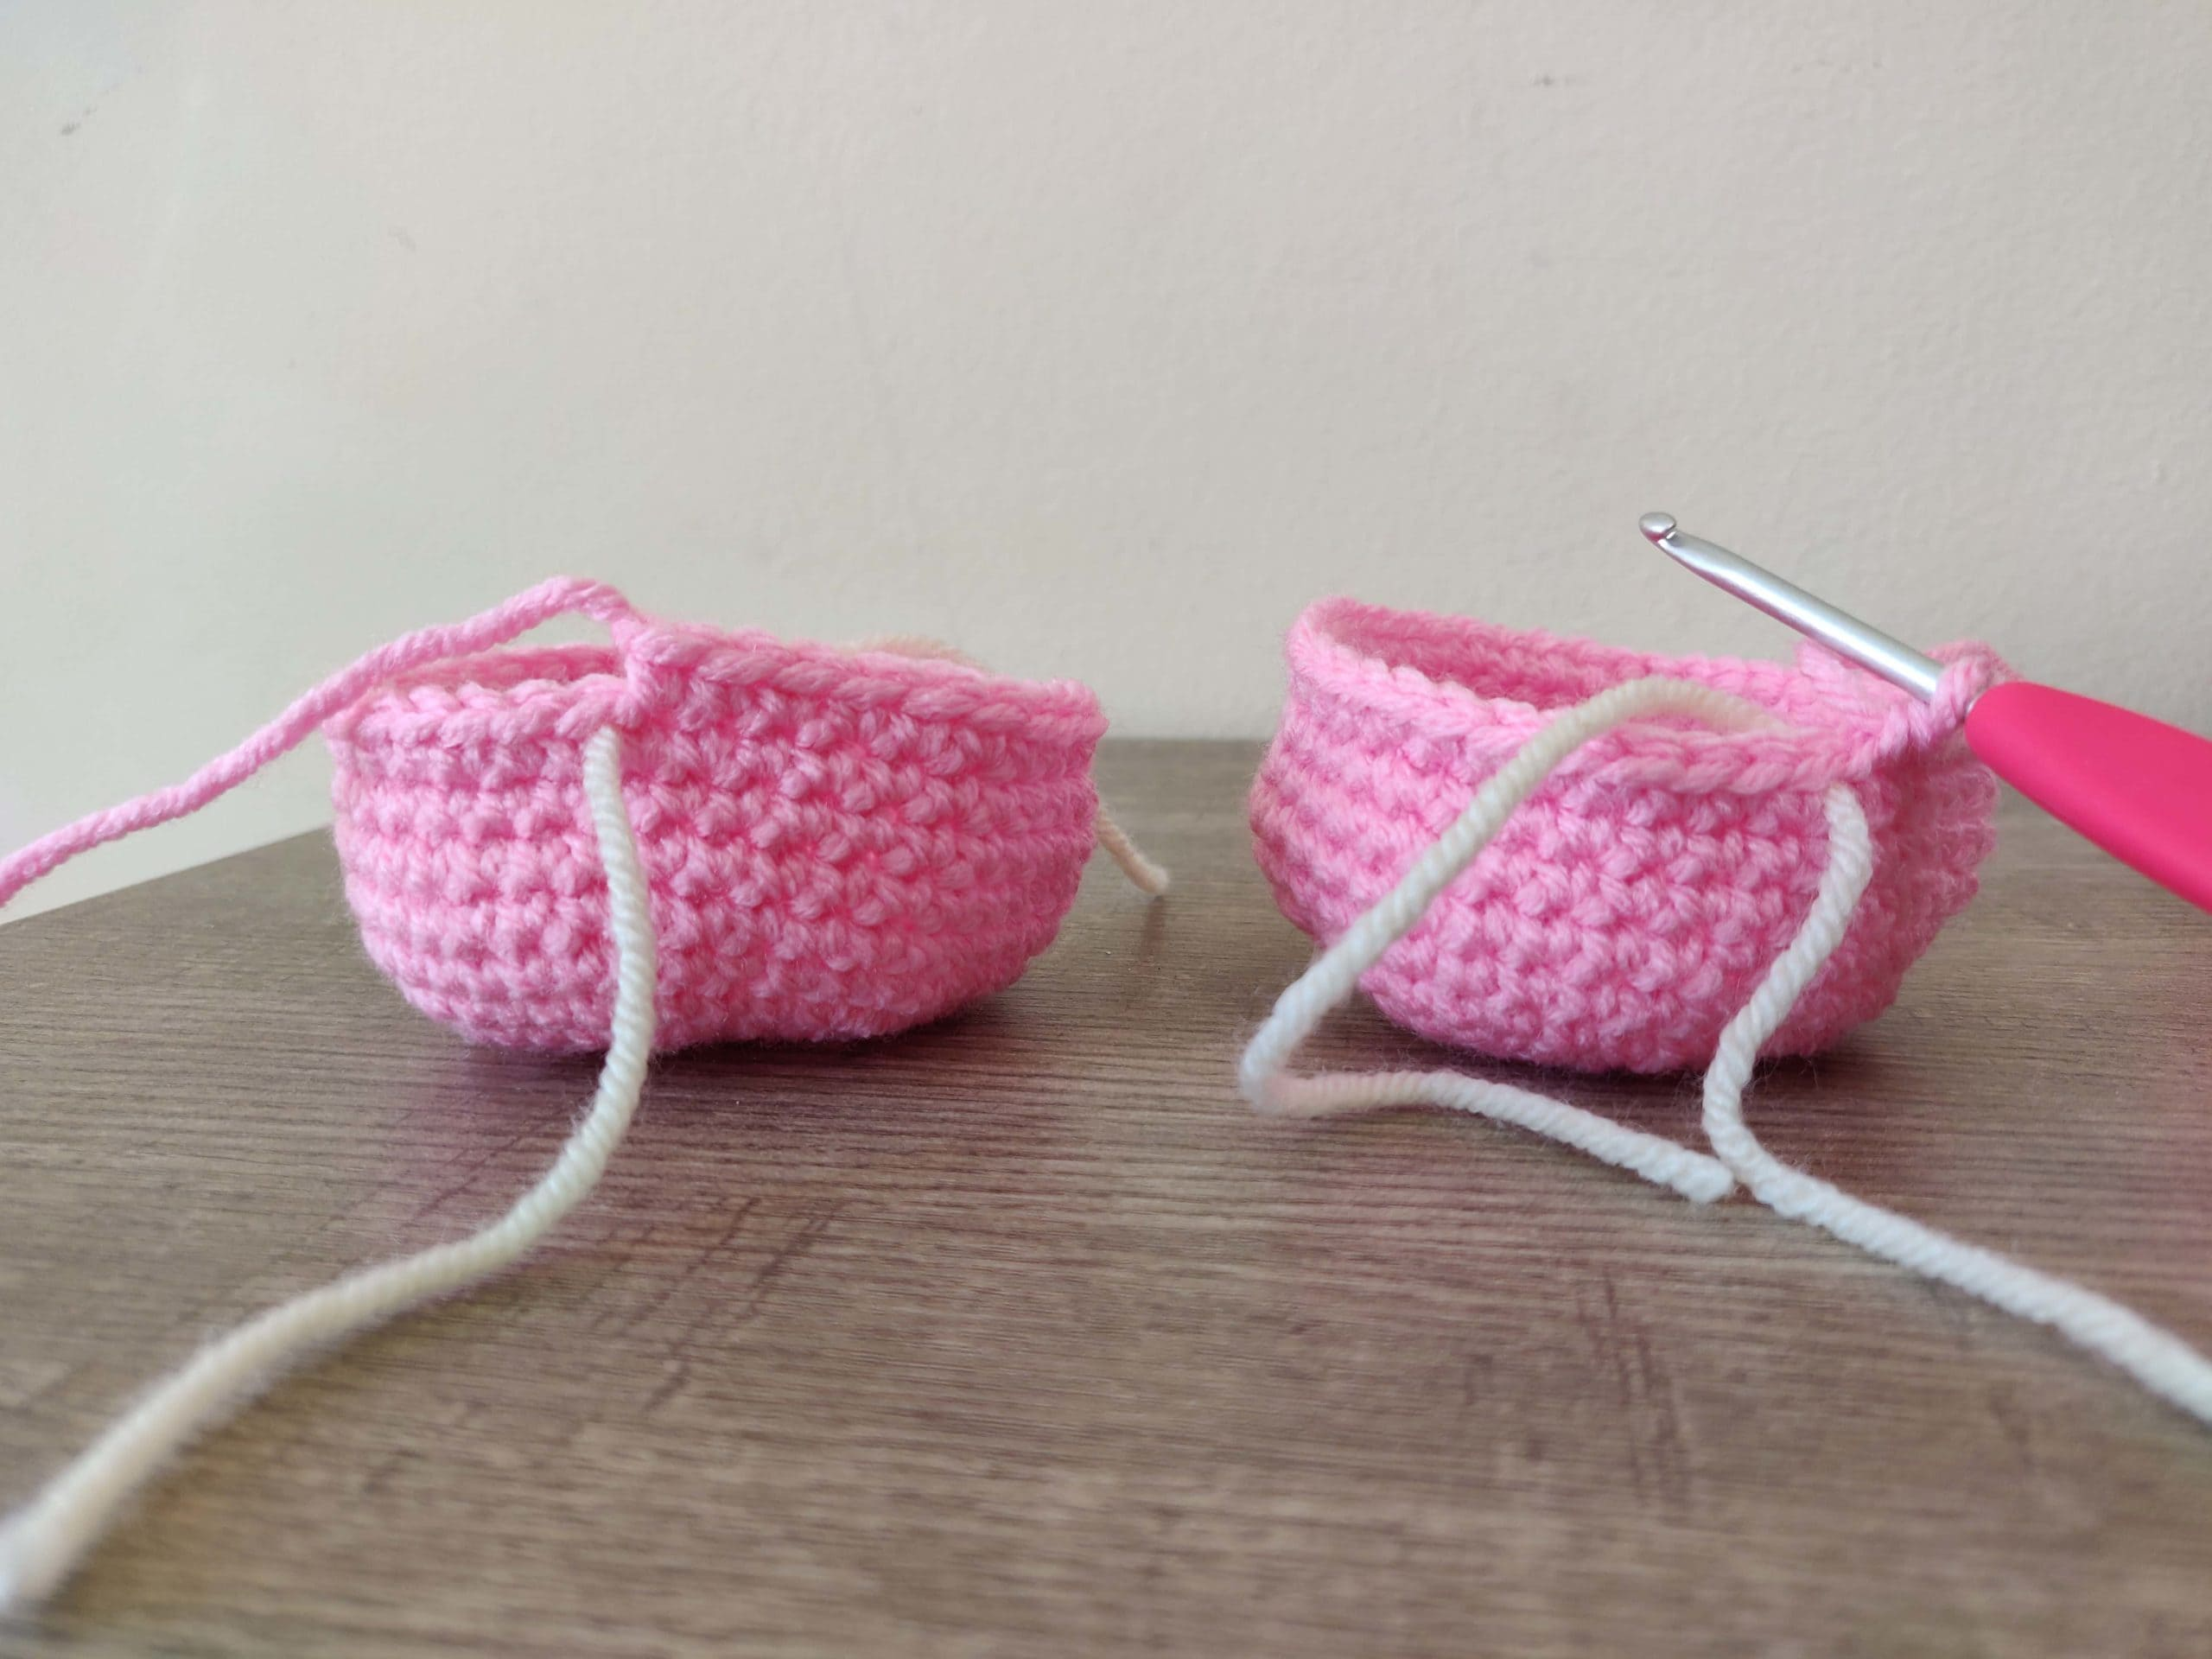 Two crochet pieces in Pink color yarn.